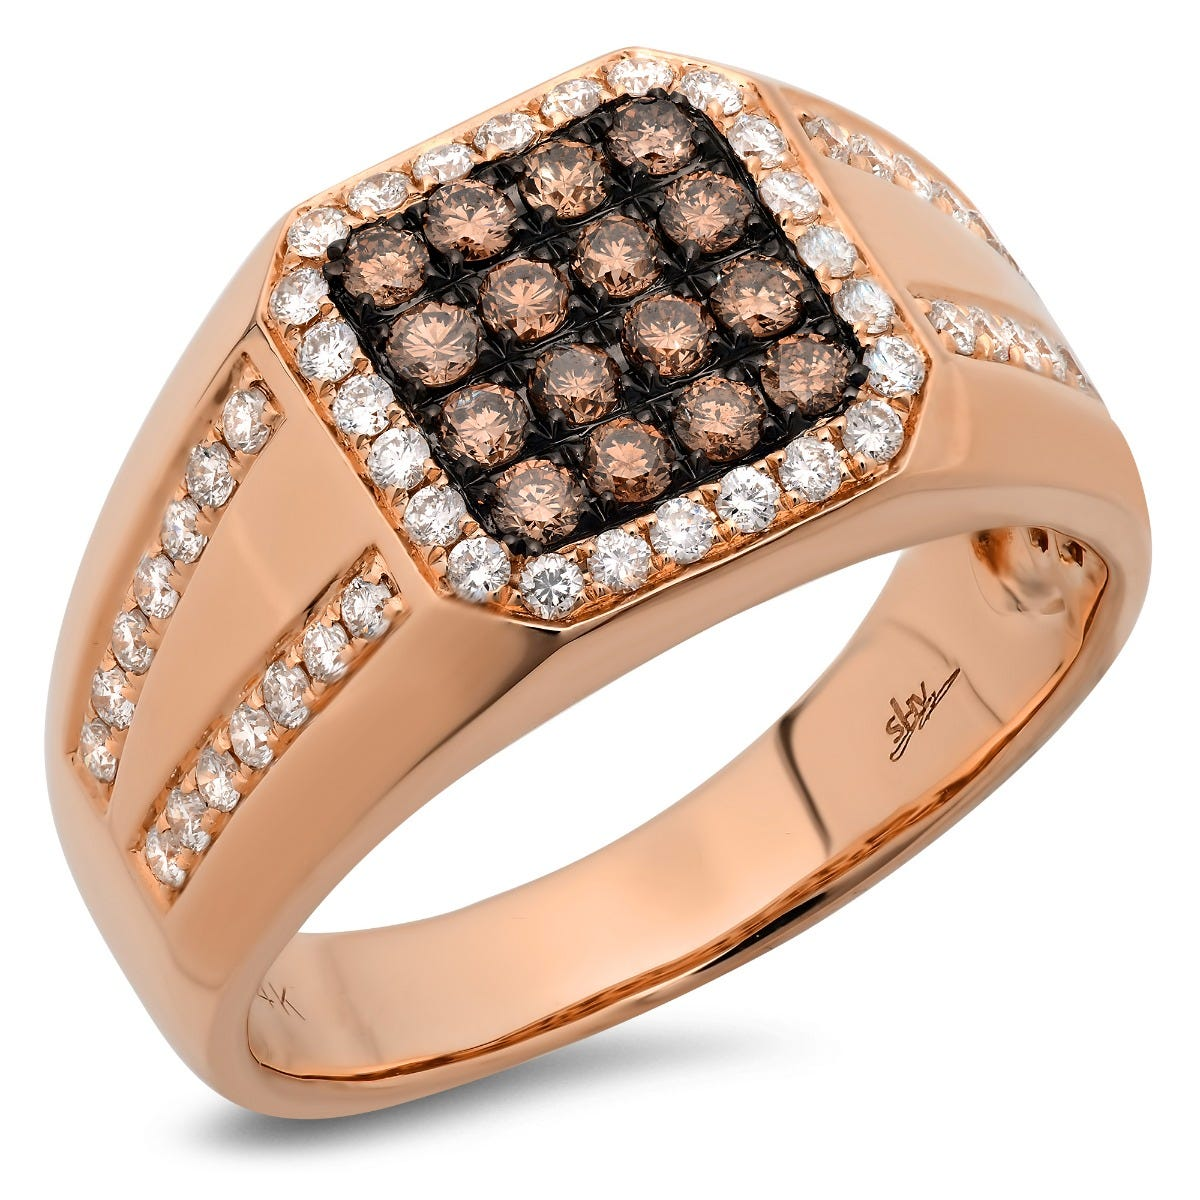 Shy Creation Men's White & Champagne Diamond Men's Ring in 14k Rose Gold